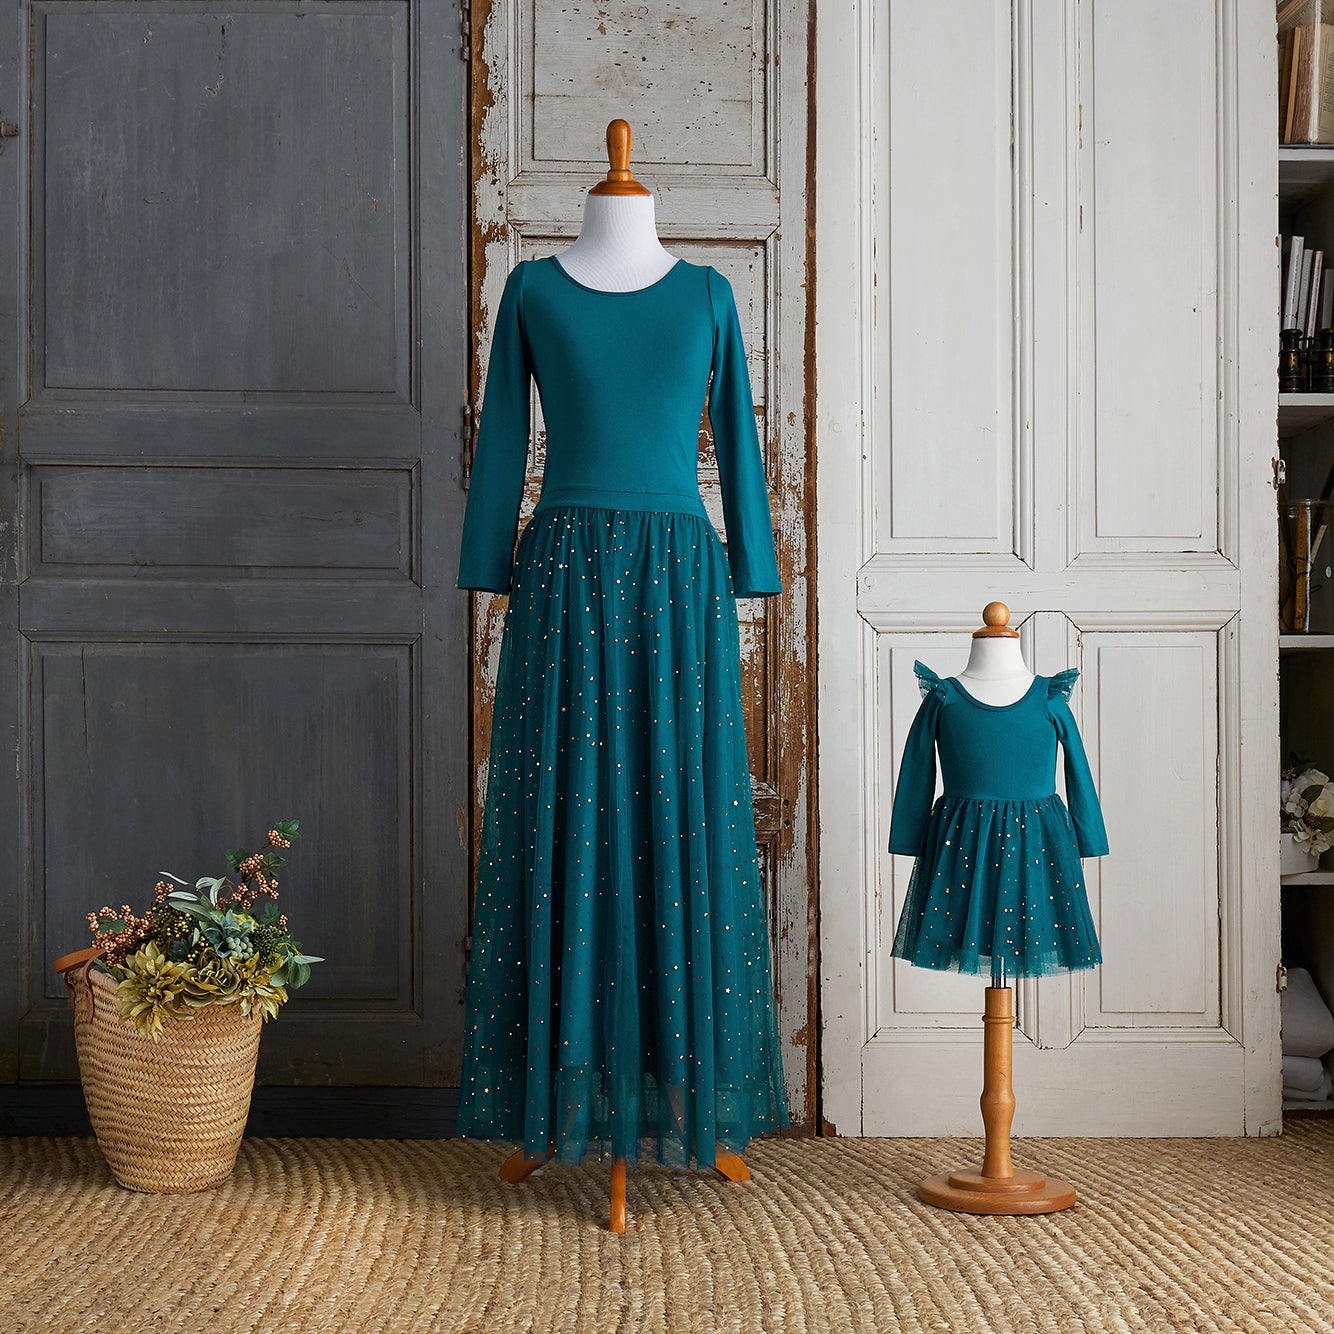 Ballerina Dress (Women) - Peacock Blue